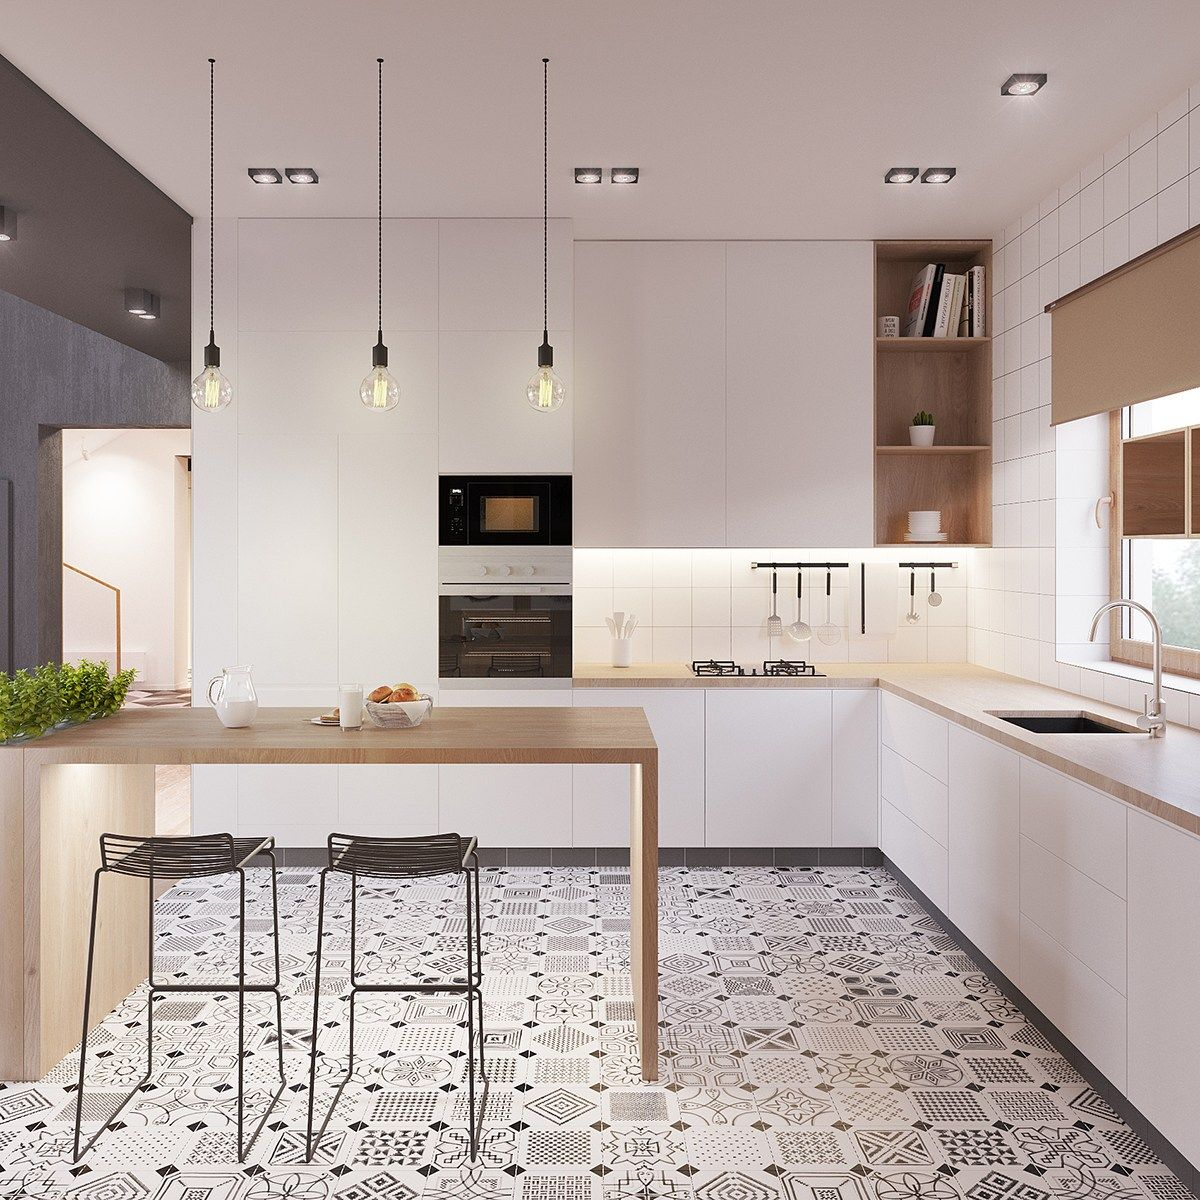 Those HAY Hee Chairs really make this kitchen pop! | monolocALE ...